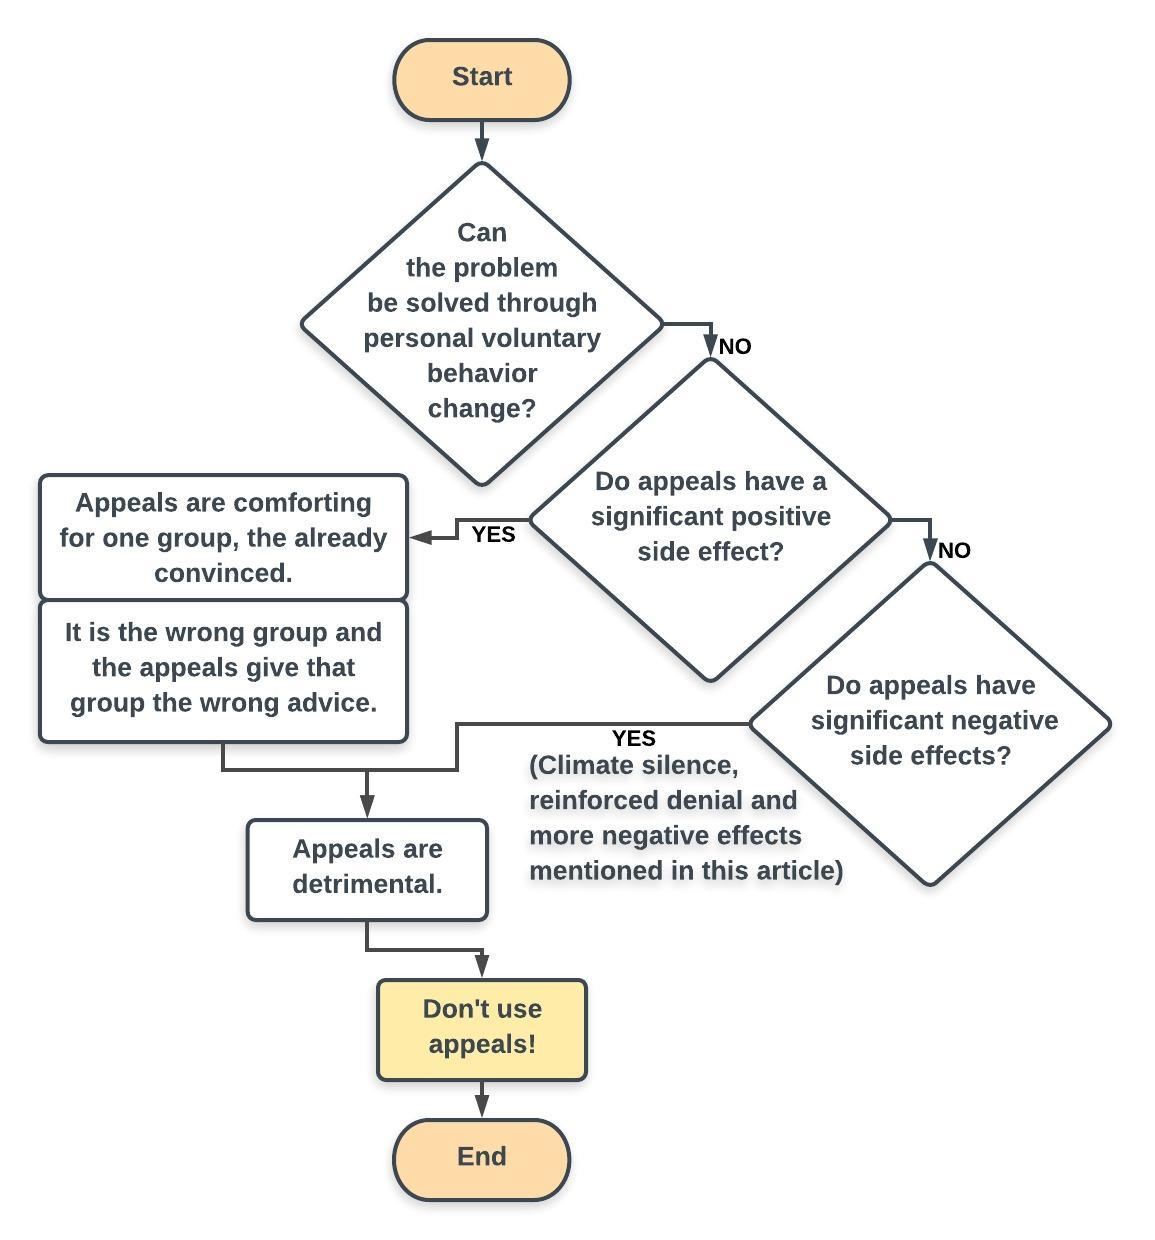 Climate preaching is overall detrimental. Don't appeal for voluntary consumer action. | 'Flowchart'